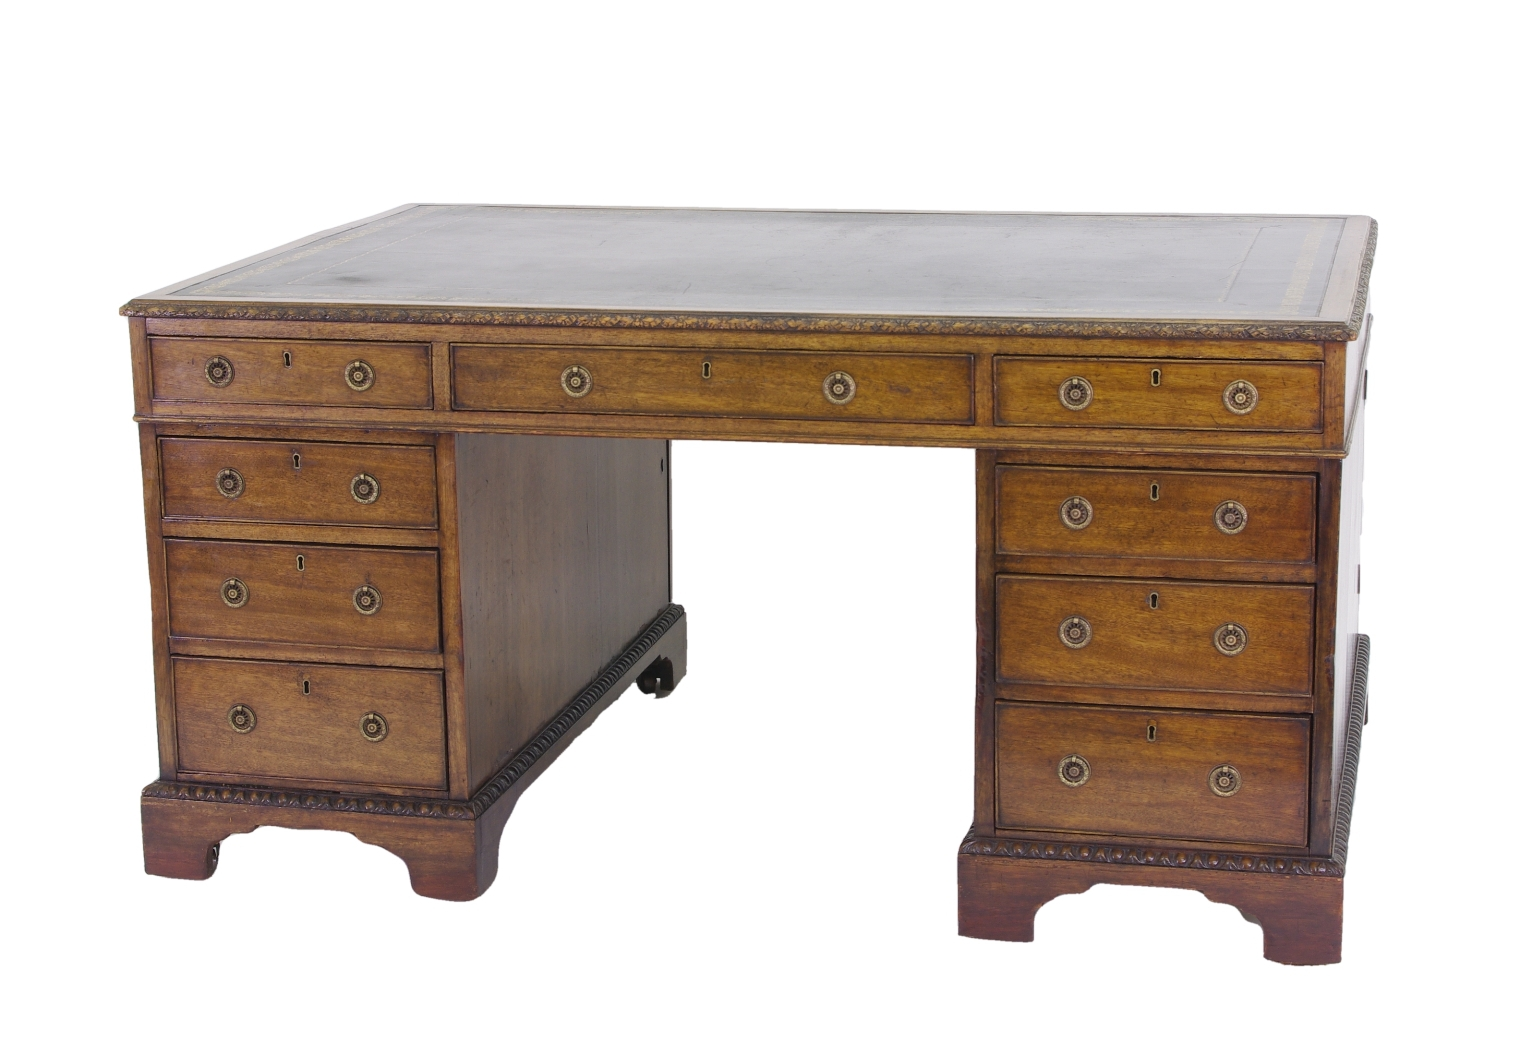 View 1: Victorian Mahogany Partners Desk, c. 1840-60